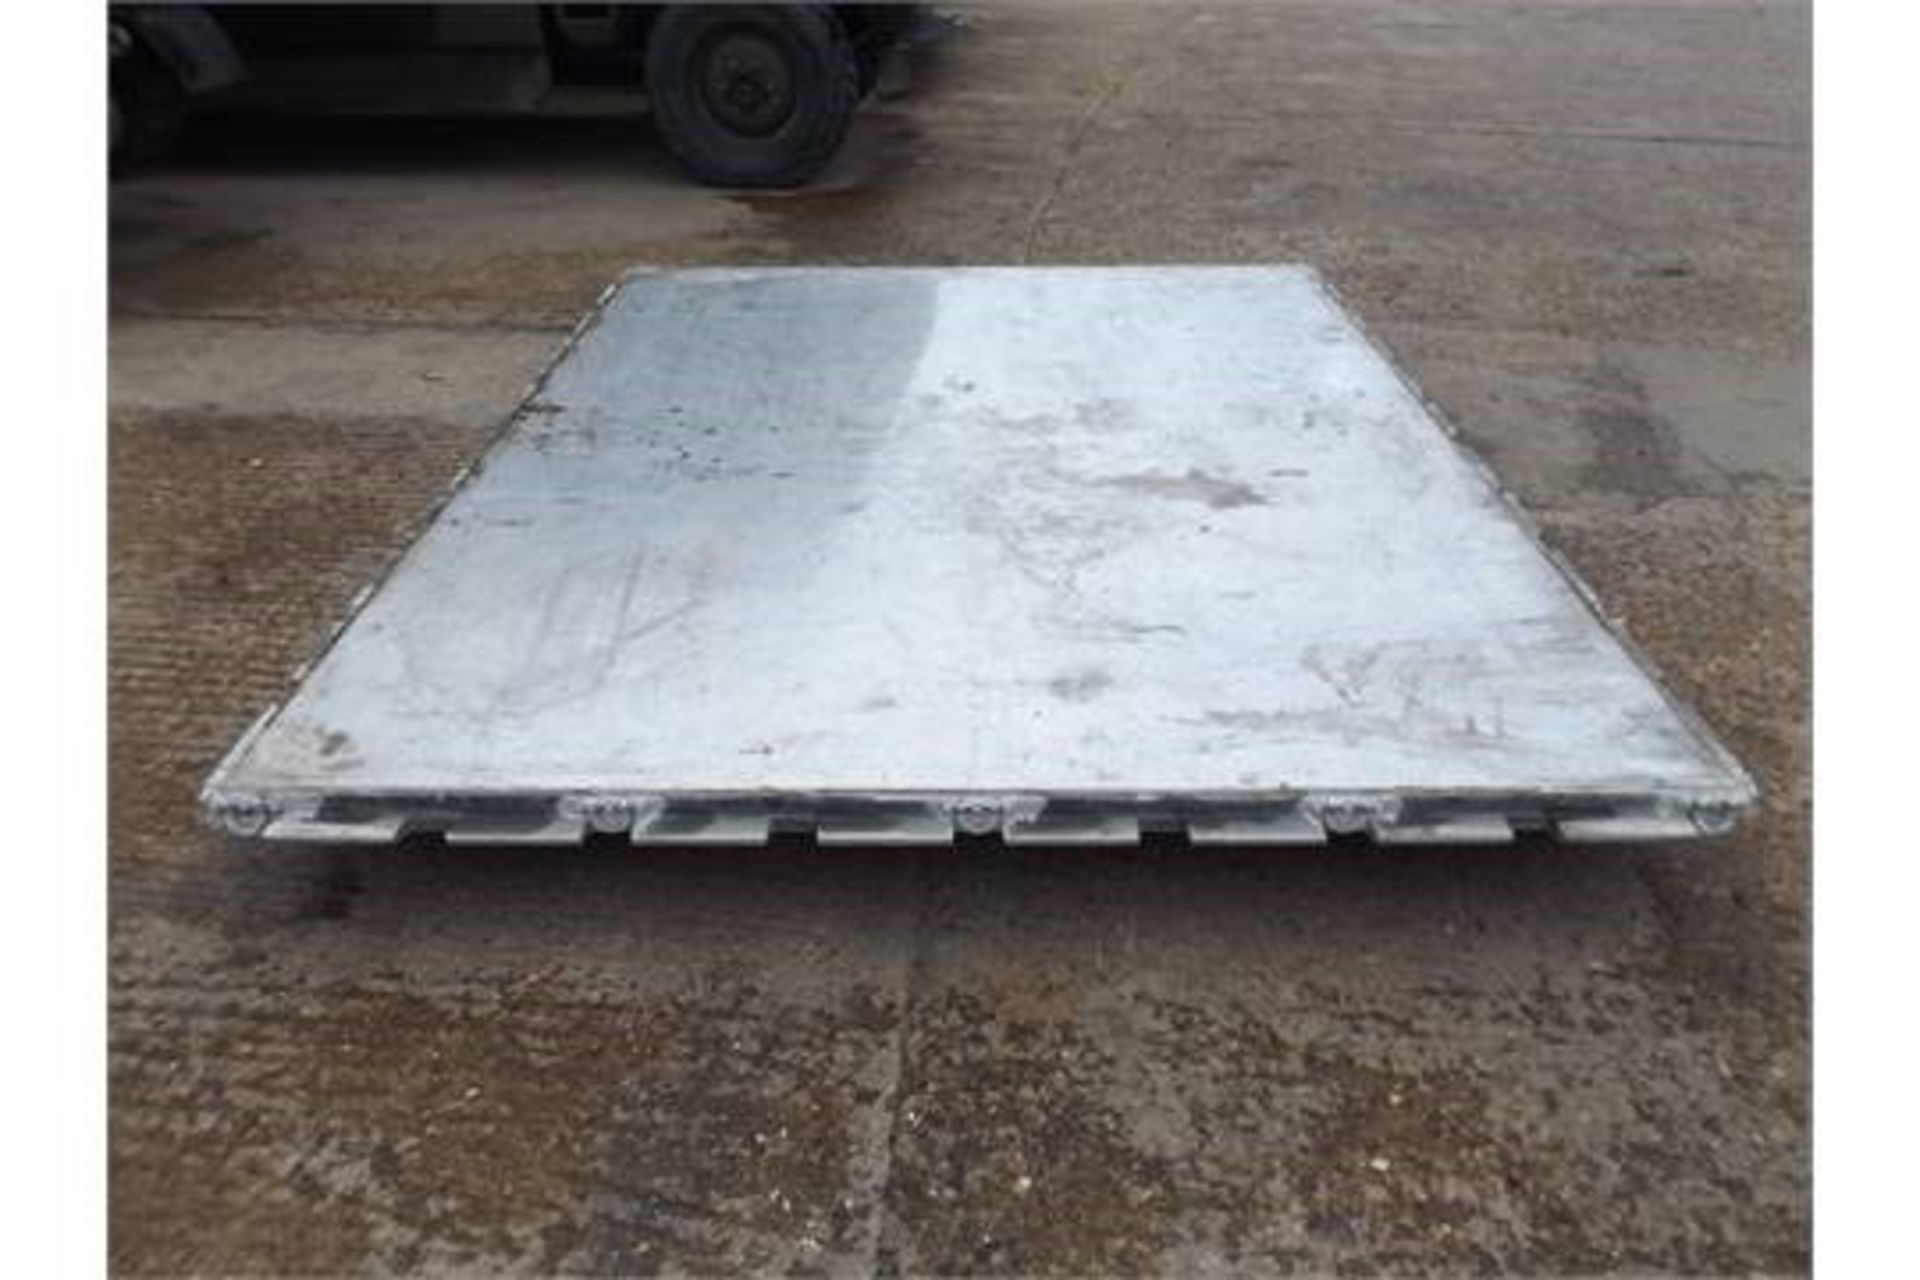 Lotto 26413 - AAR Mobility Systems HCU6/E Aircraft Cargo Loading Pallet